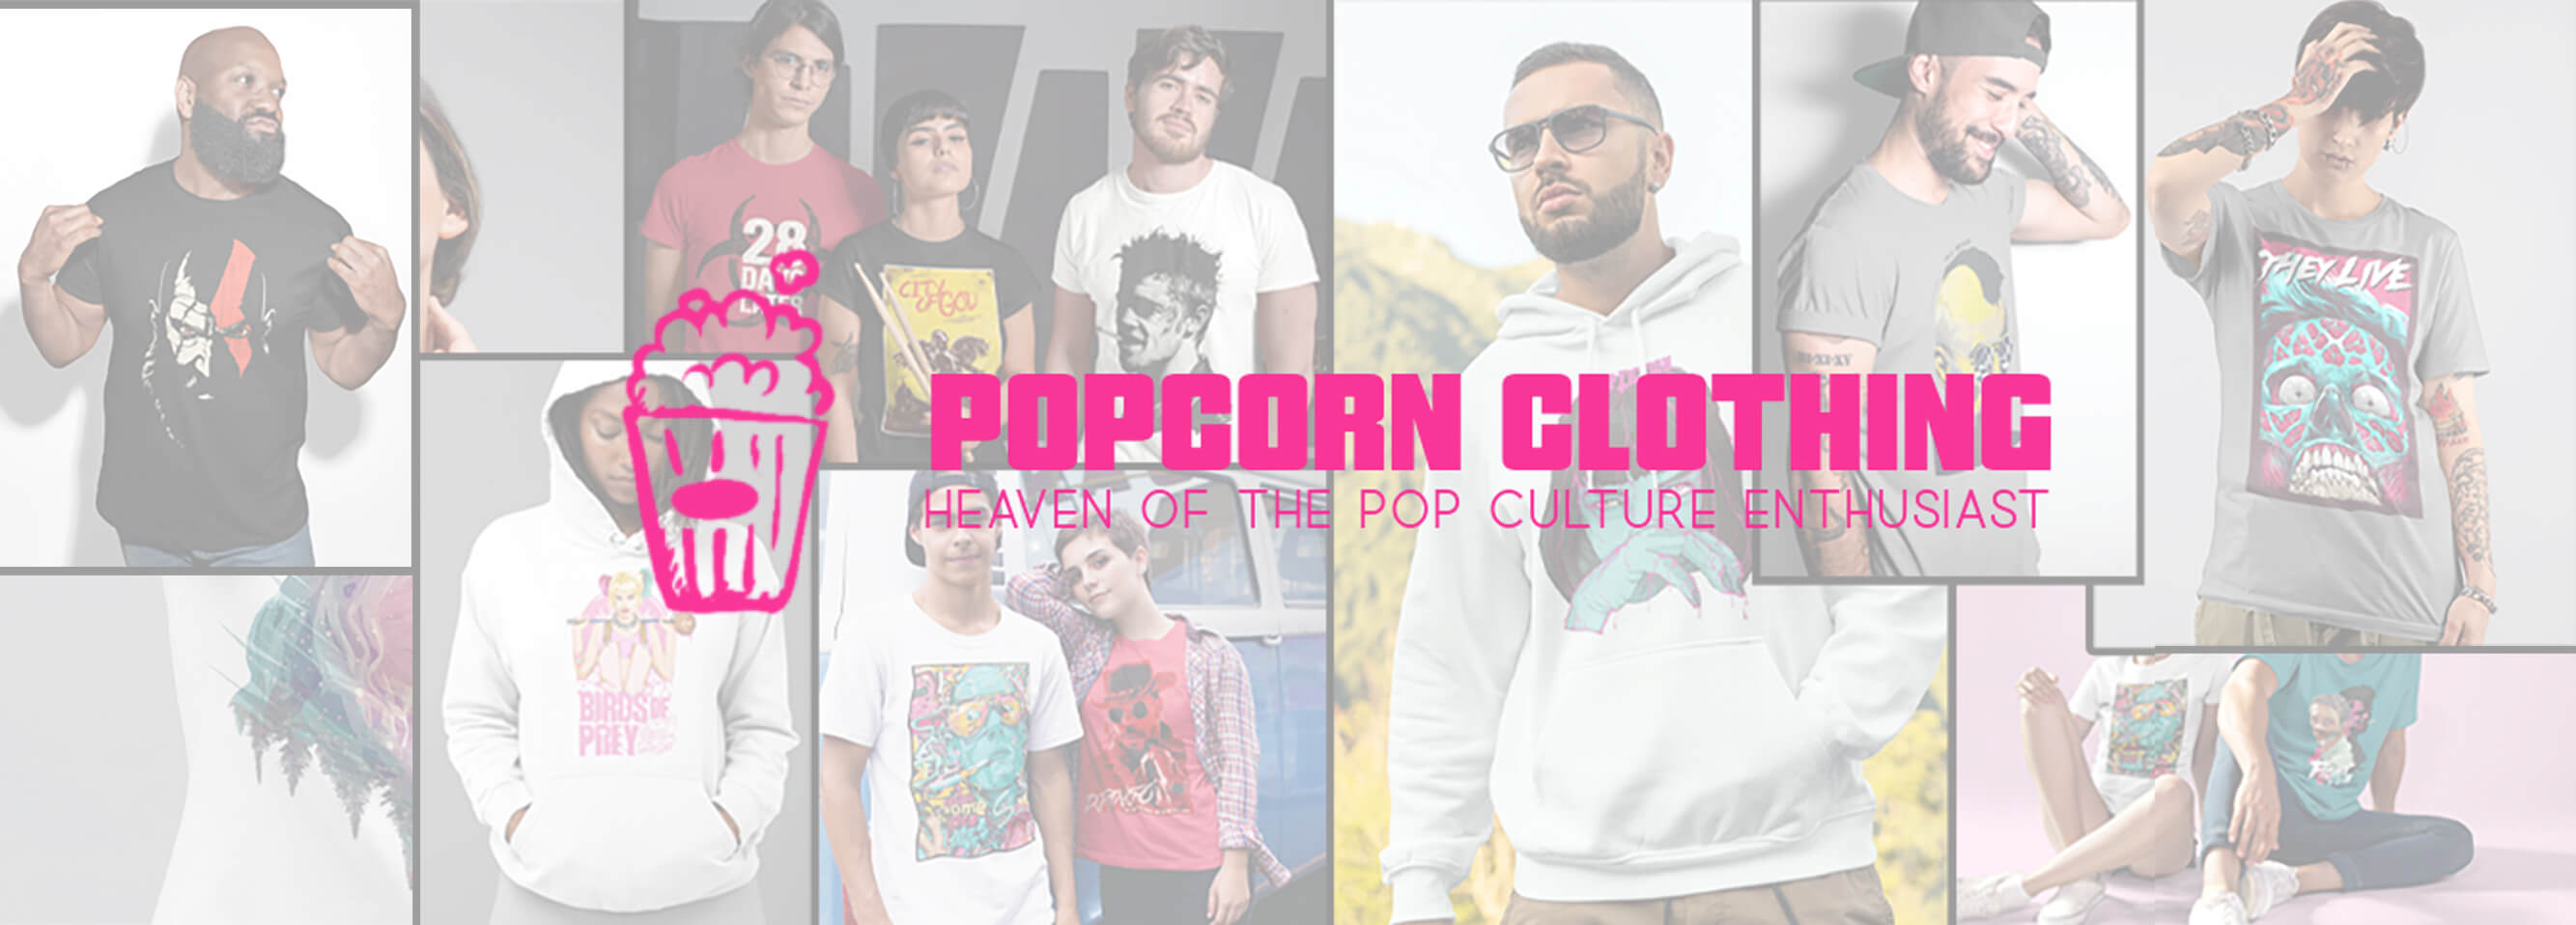 Popcorn Clothing Prapor